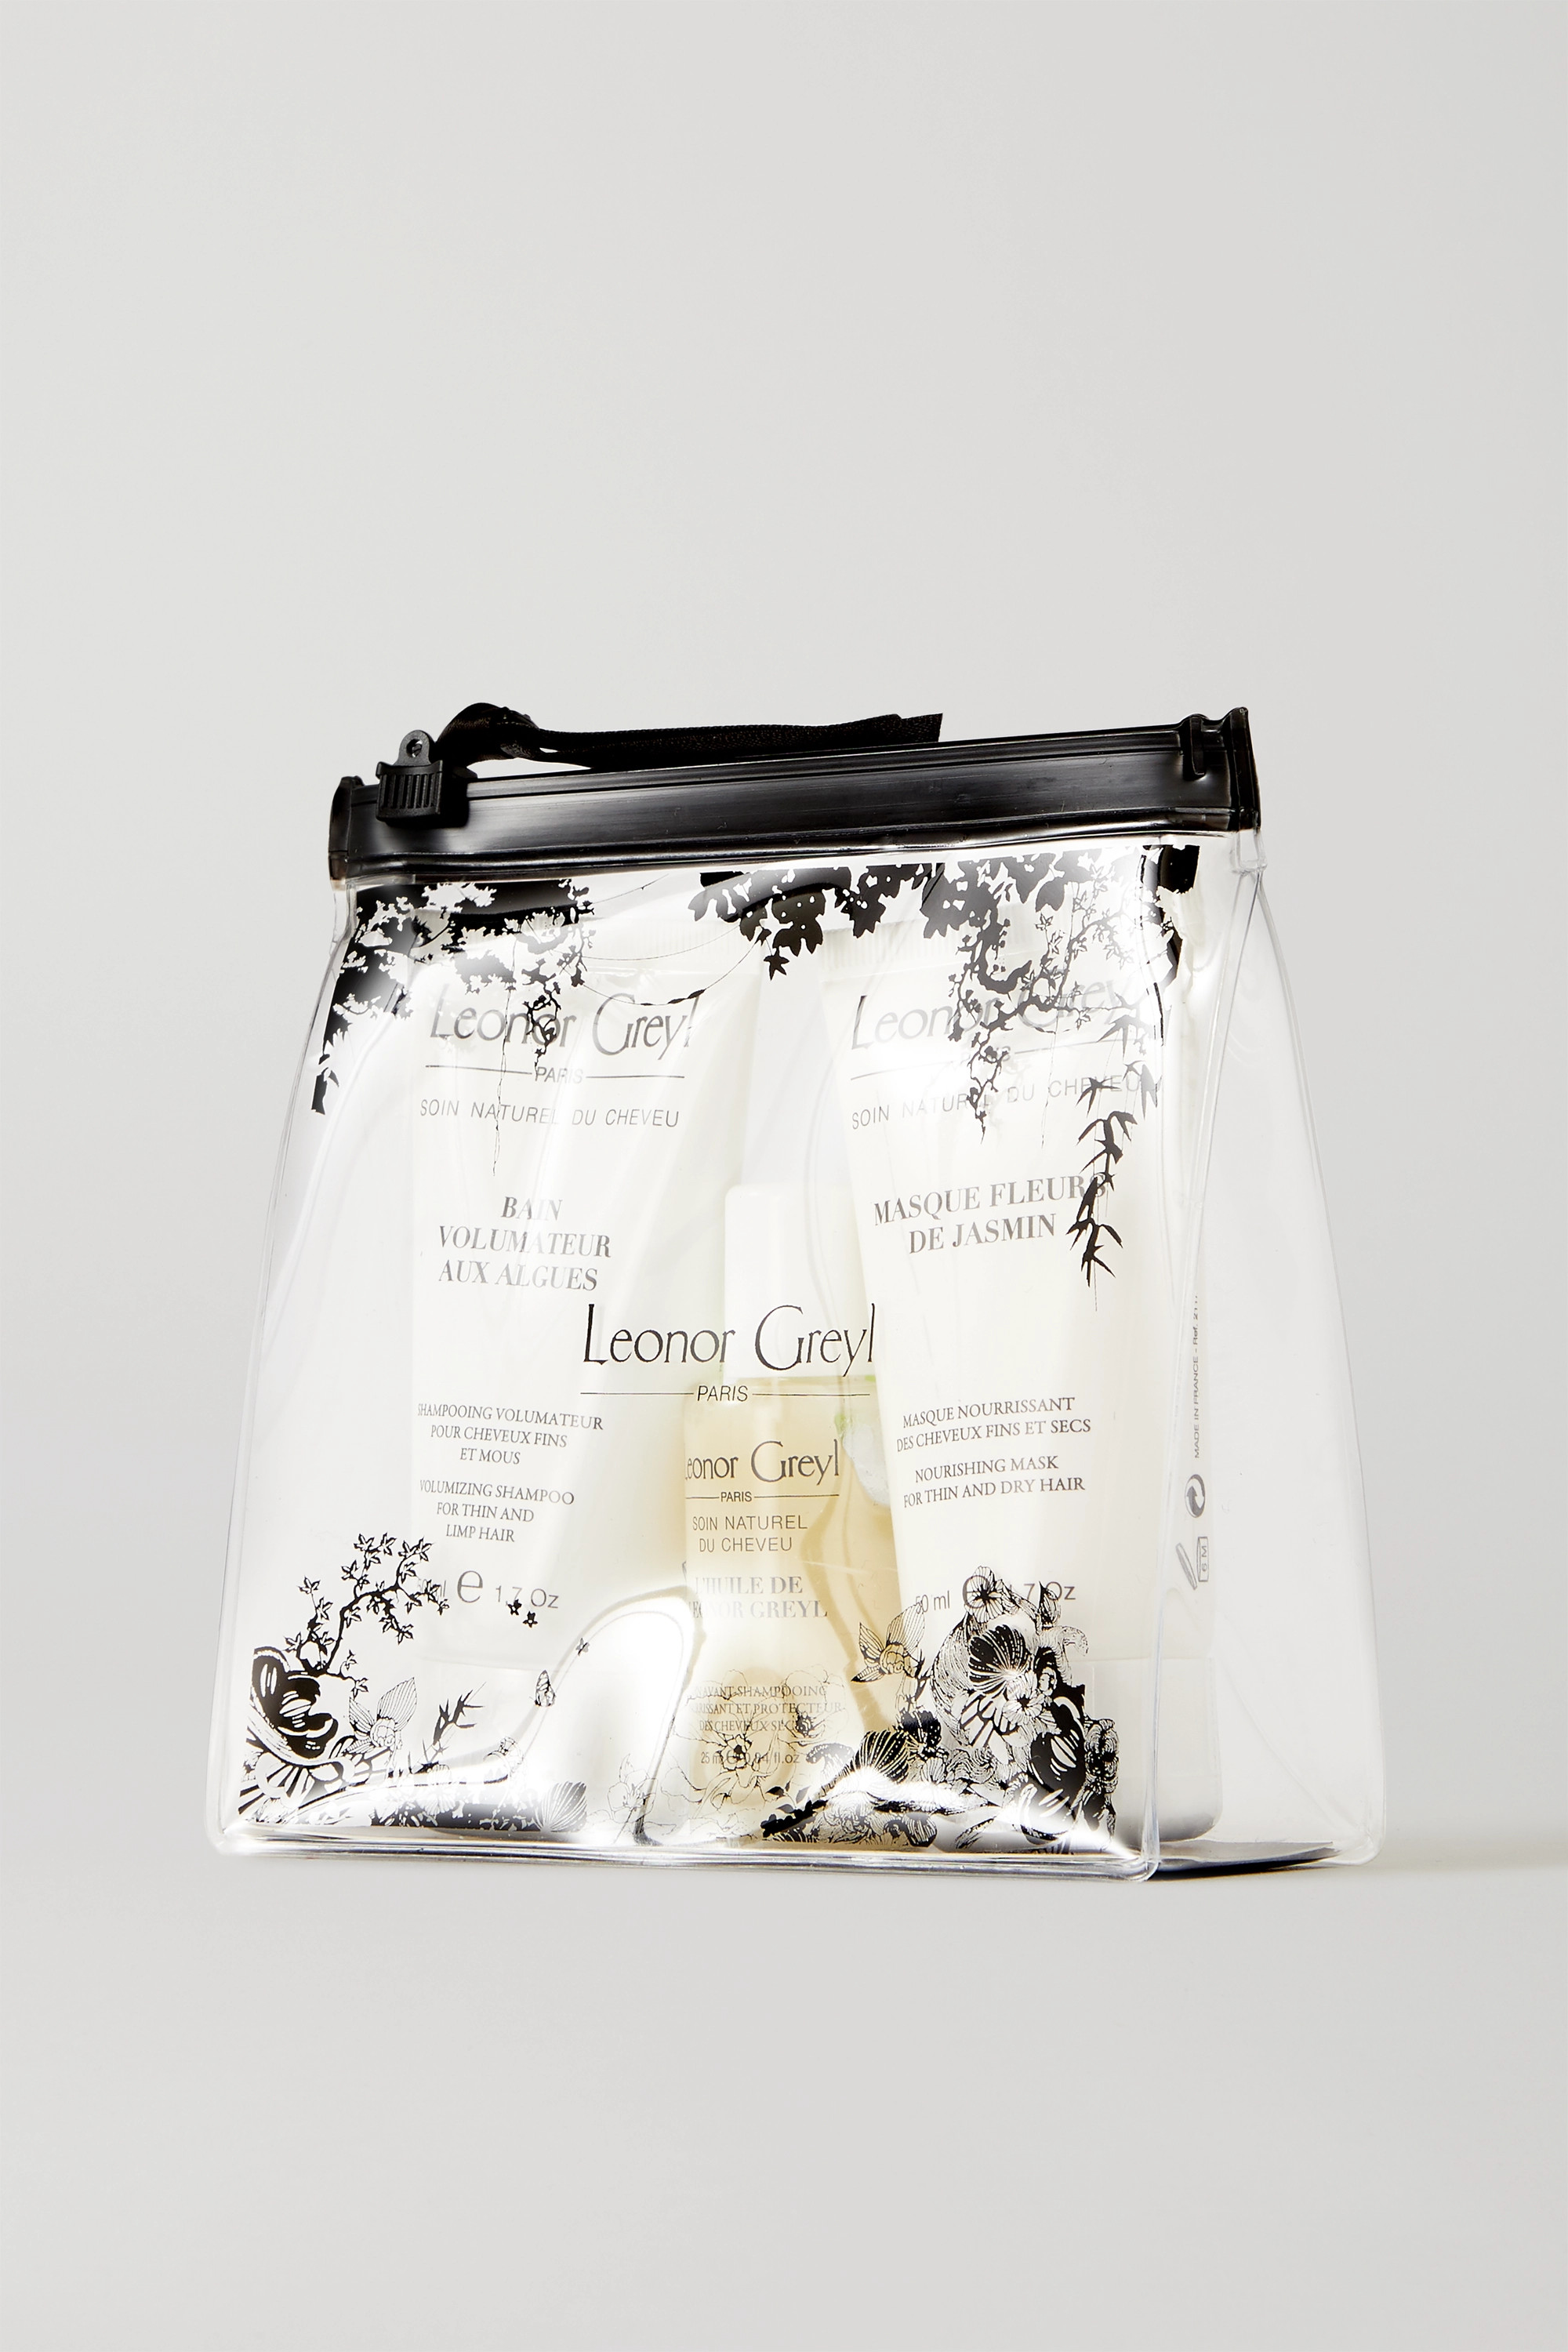 Leonor Greyl Paris Travel Kit For Colored Hair